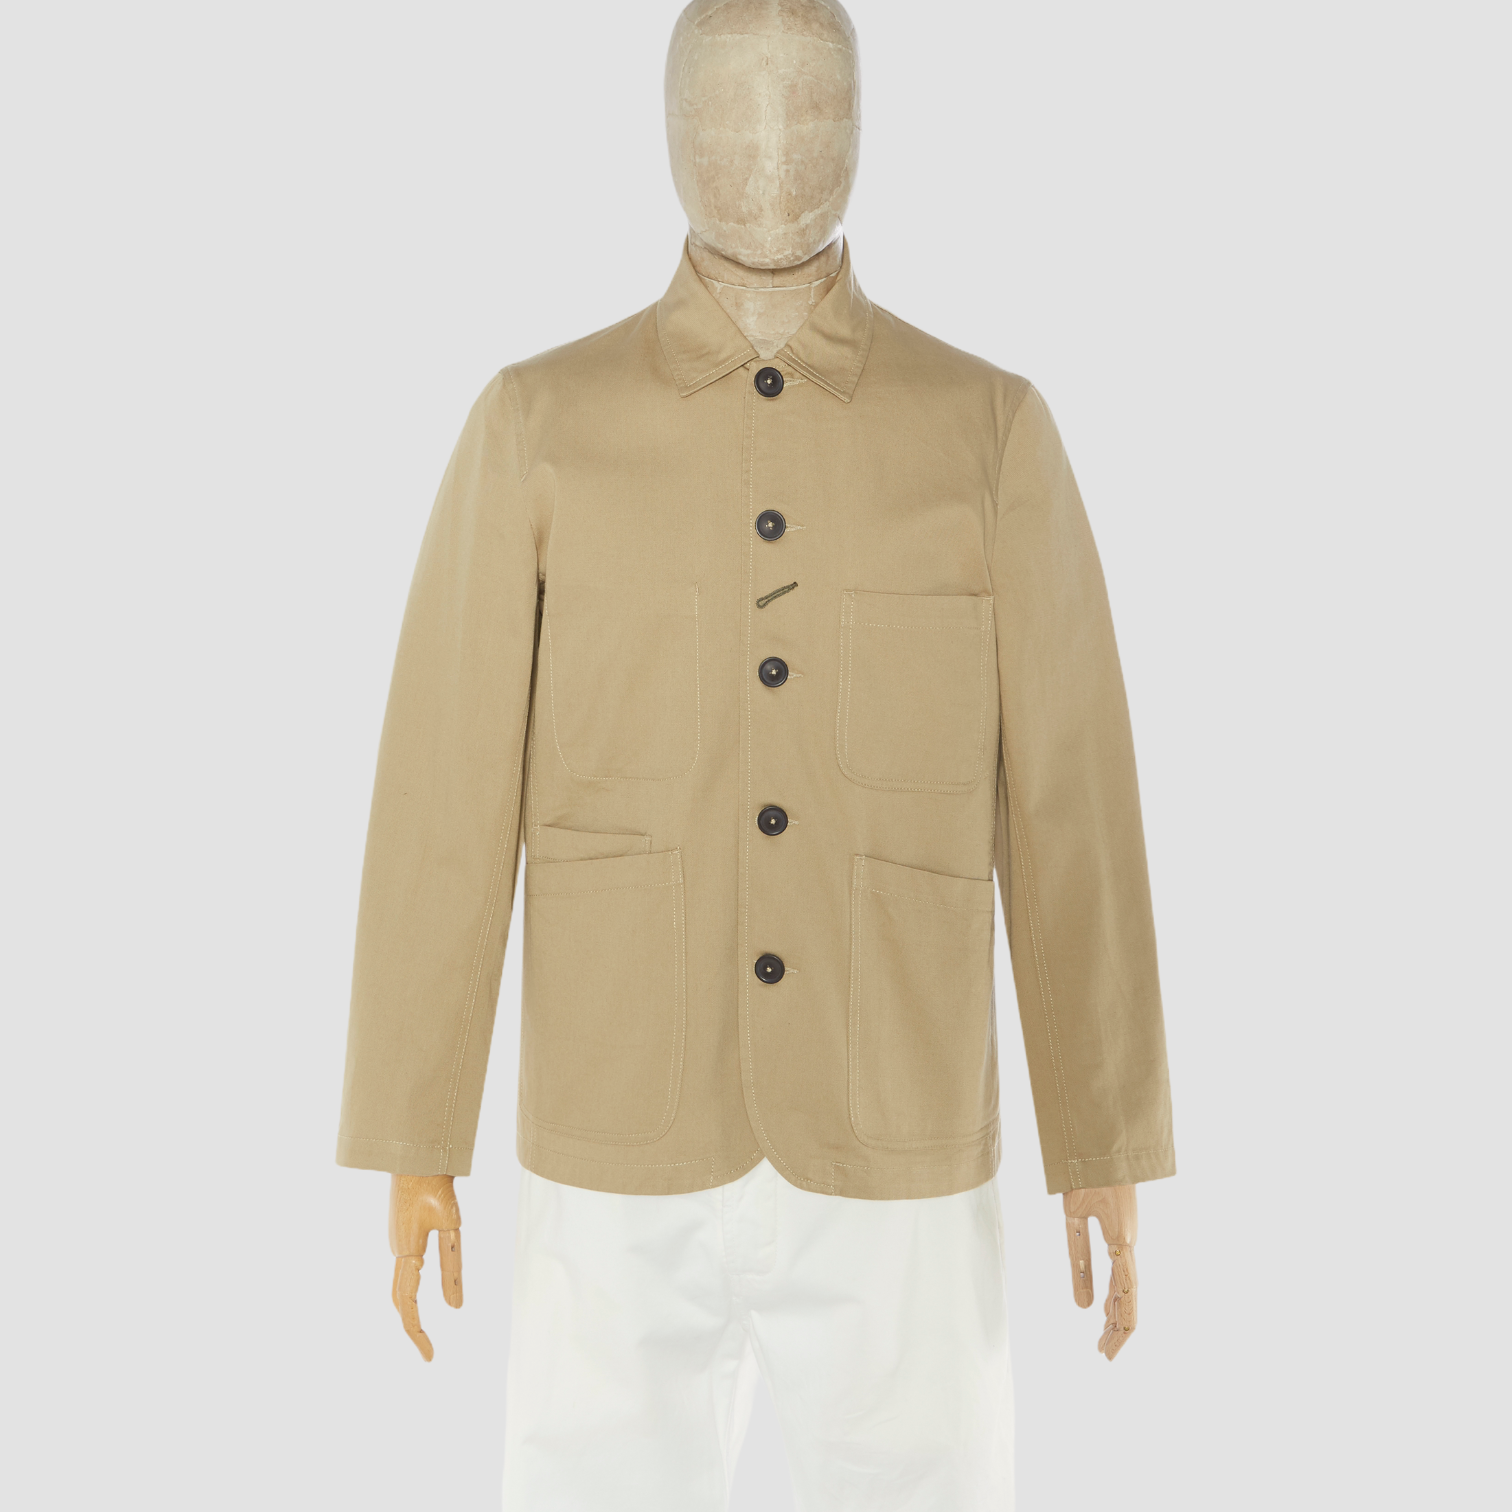 universal-works-bakers-jacket-tan-front